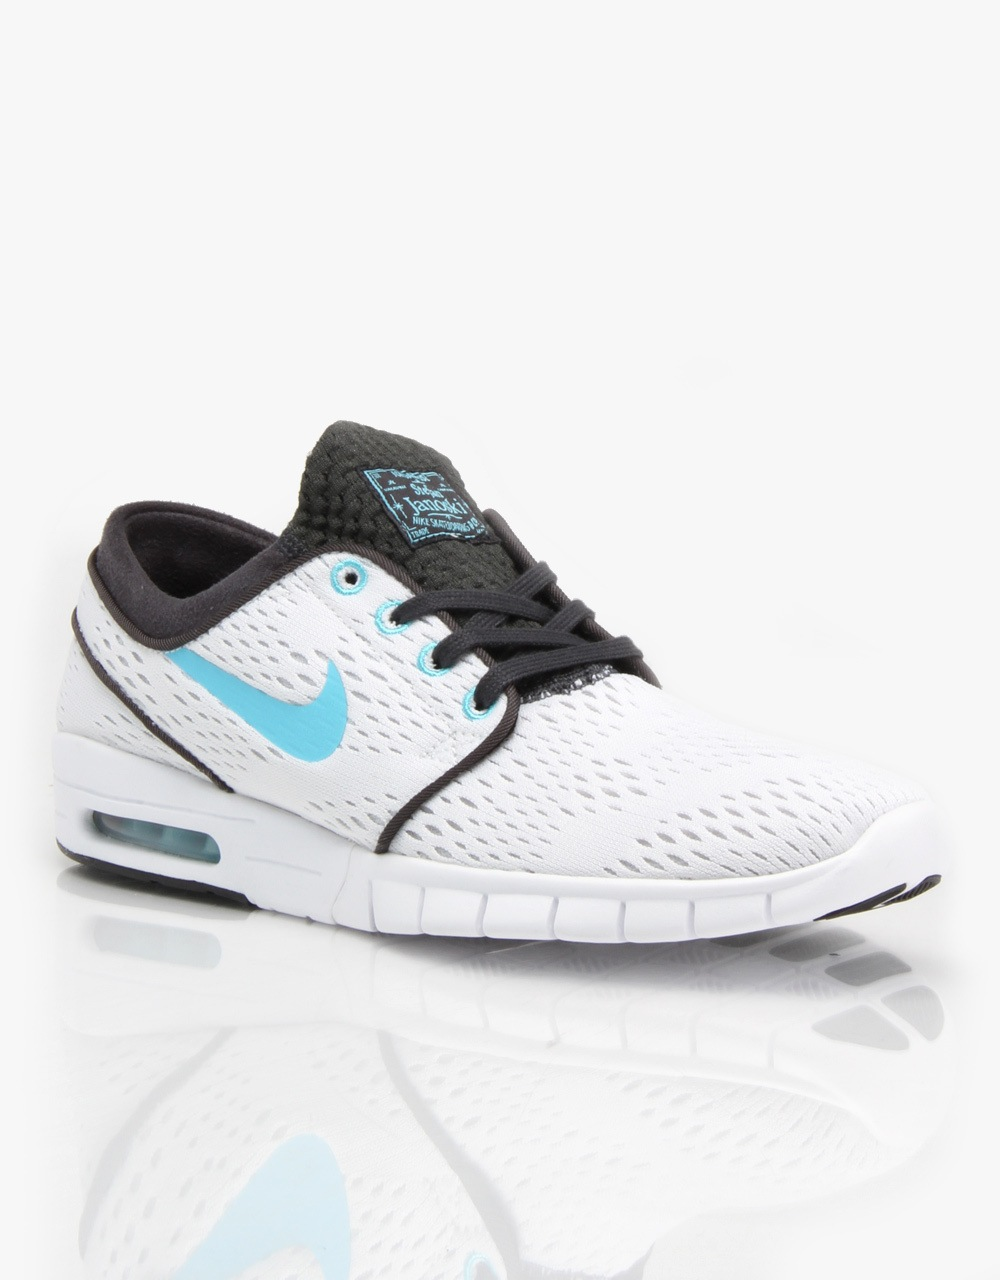 Nike SB Stefan Janoski Max Shoes - White Clearwater Anthracite Black ... 4a40151f2